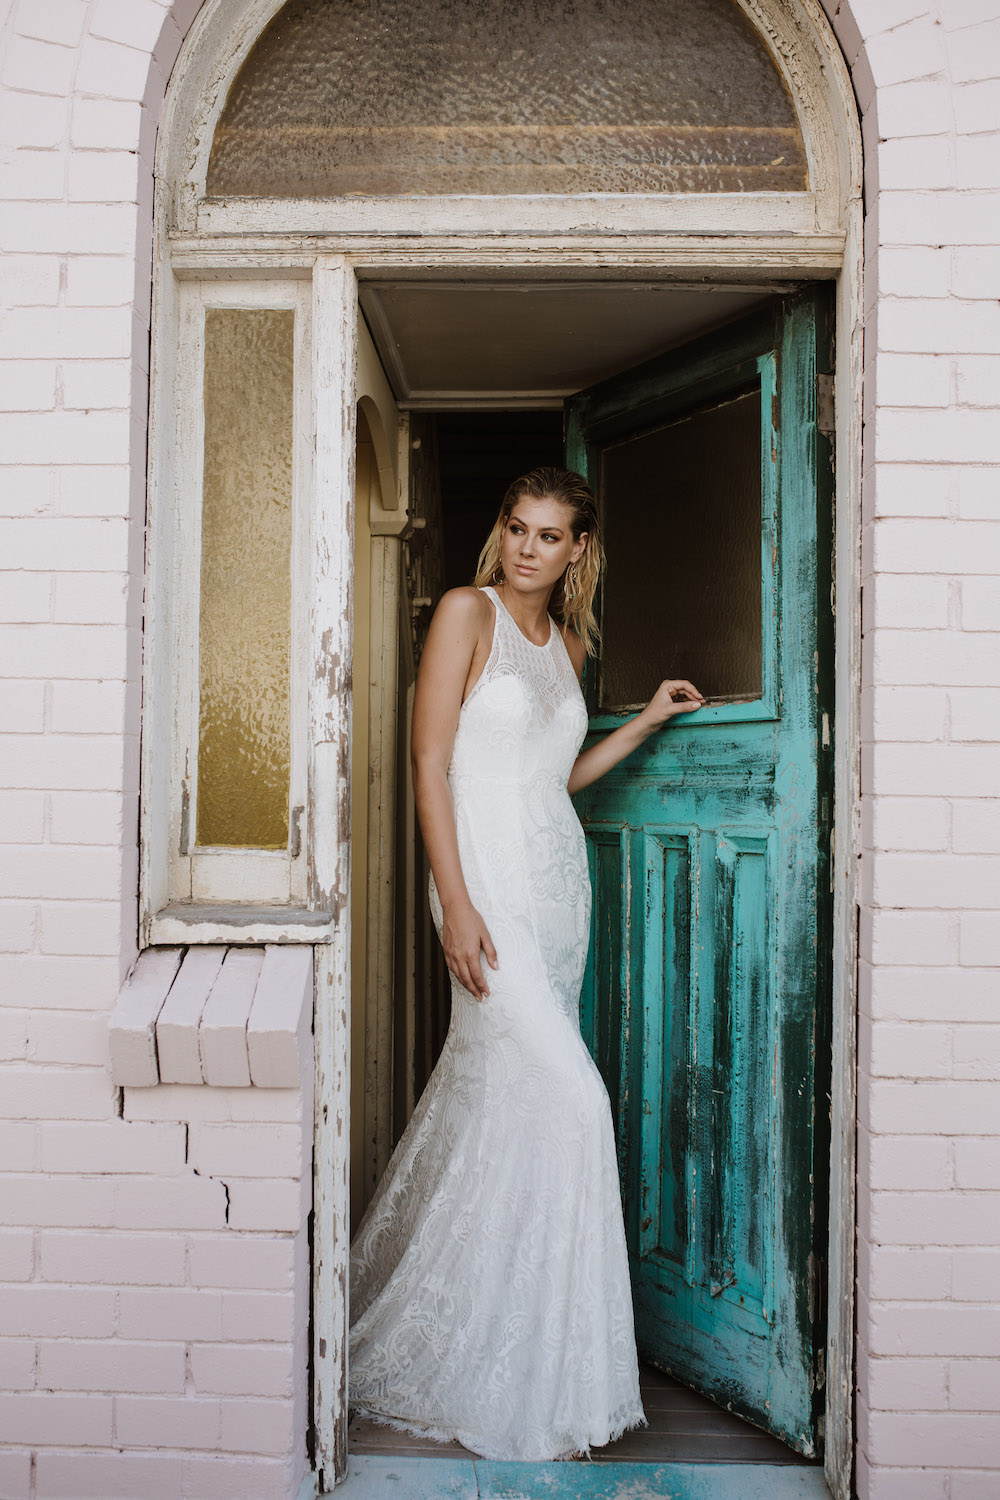 Wren wedding dress by Daisy Brides featured on LOVE FIND CO.